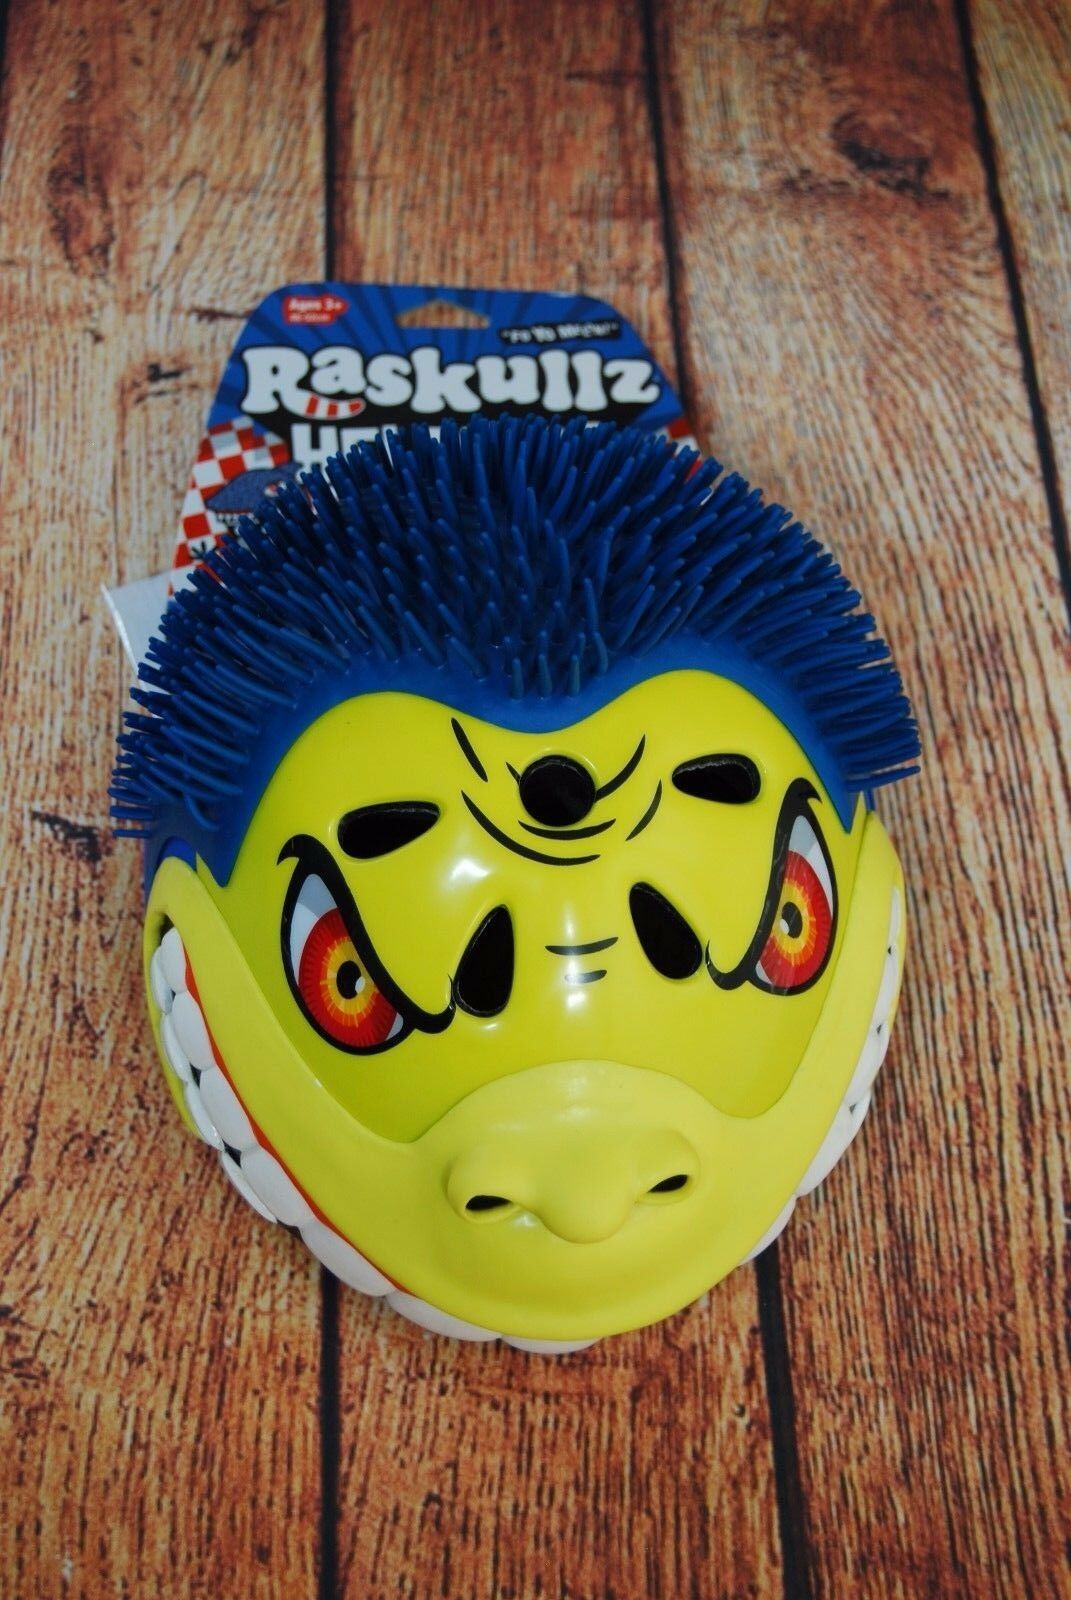 Primary image for NWT! Raskullz Helmet Gorilla Blue Ages 3+ 48-52 Cm